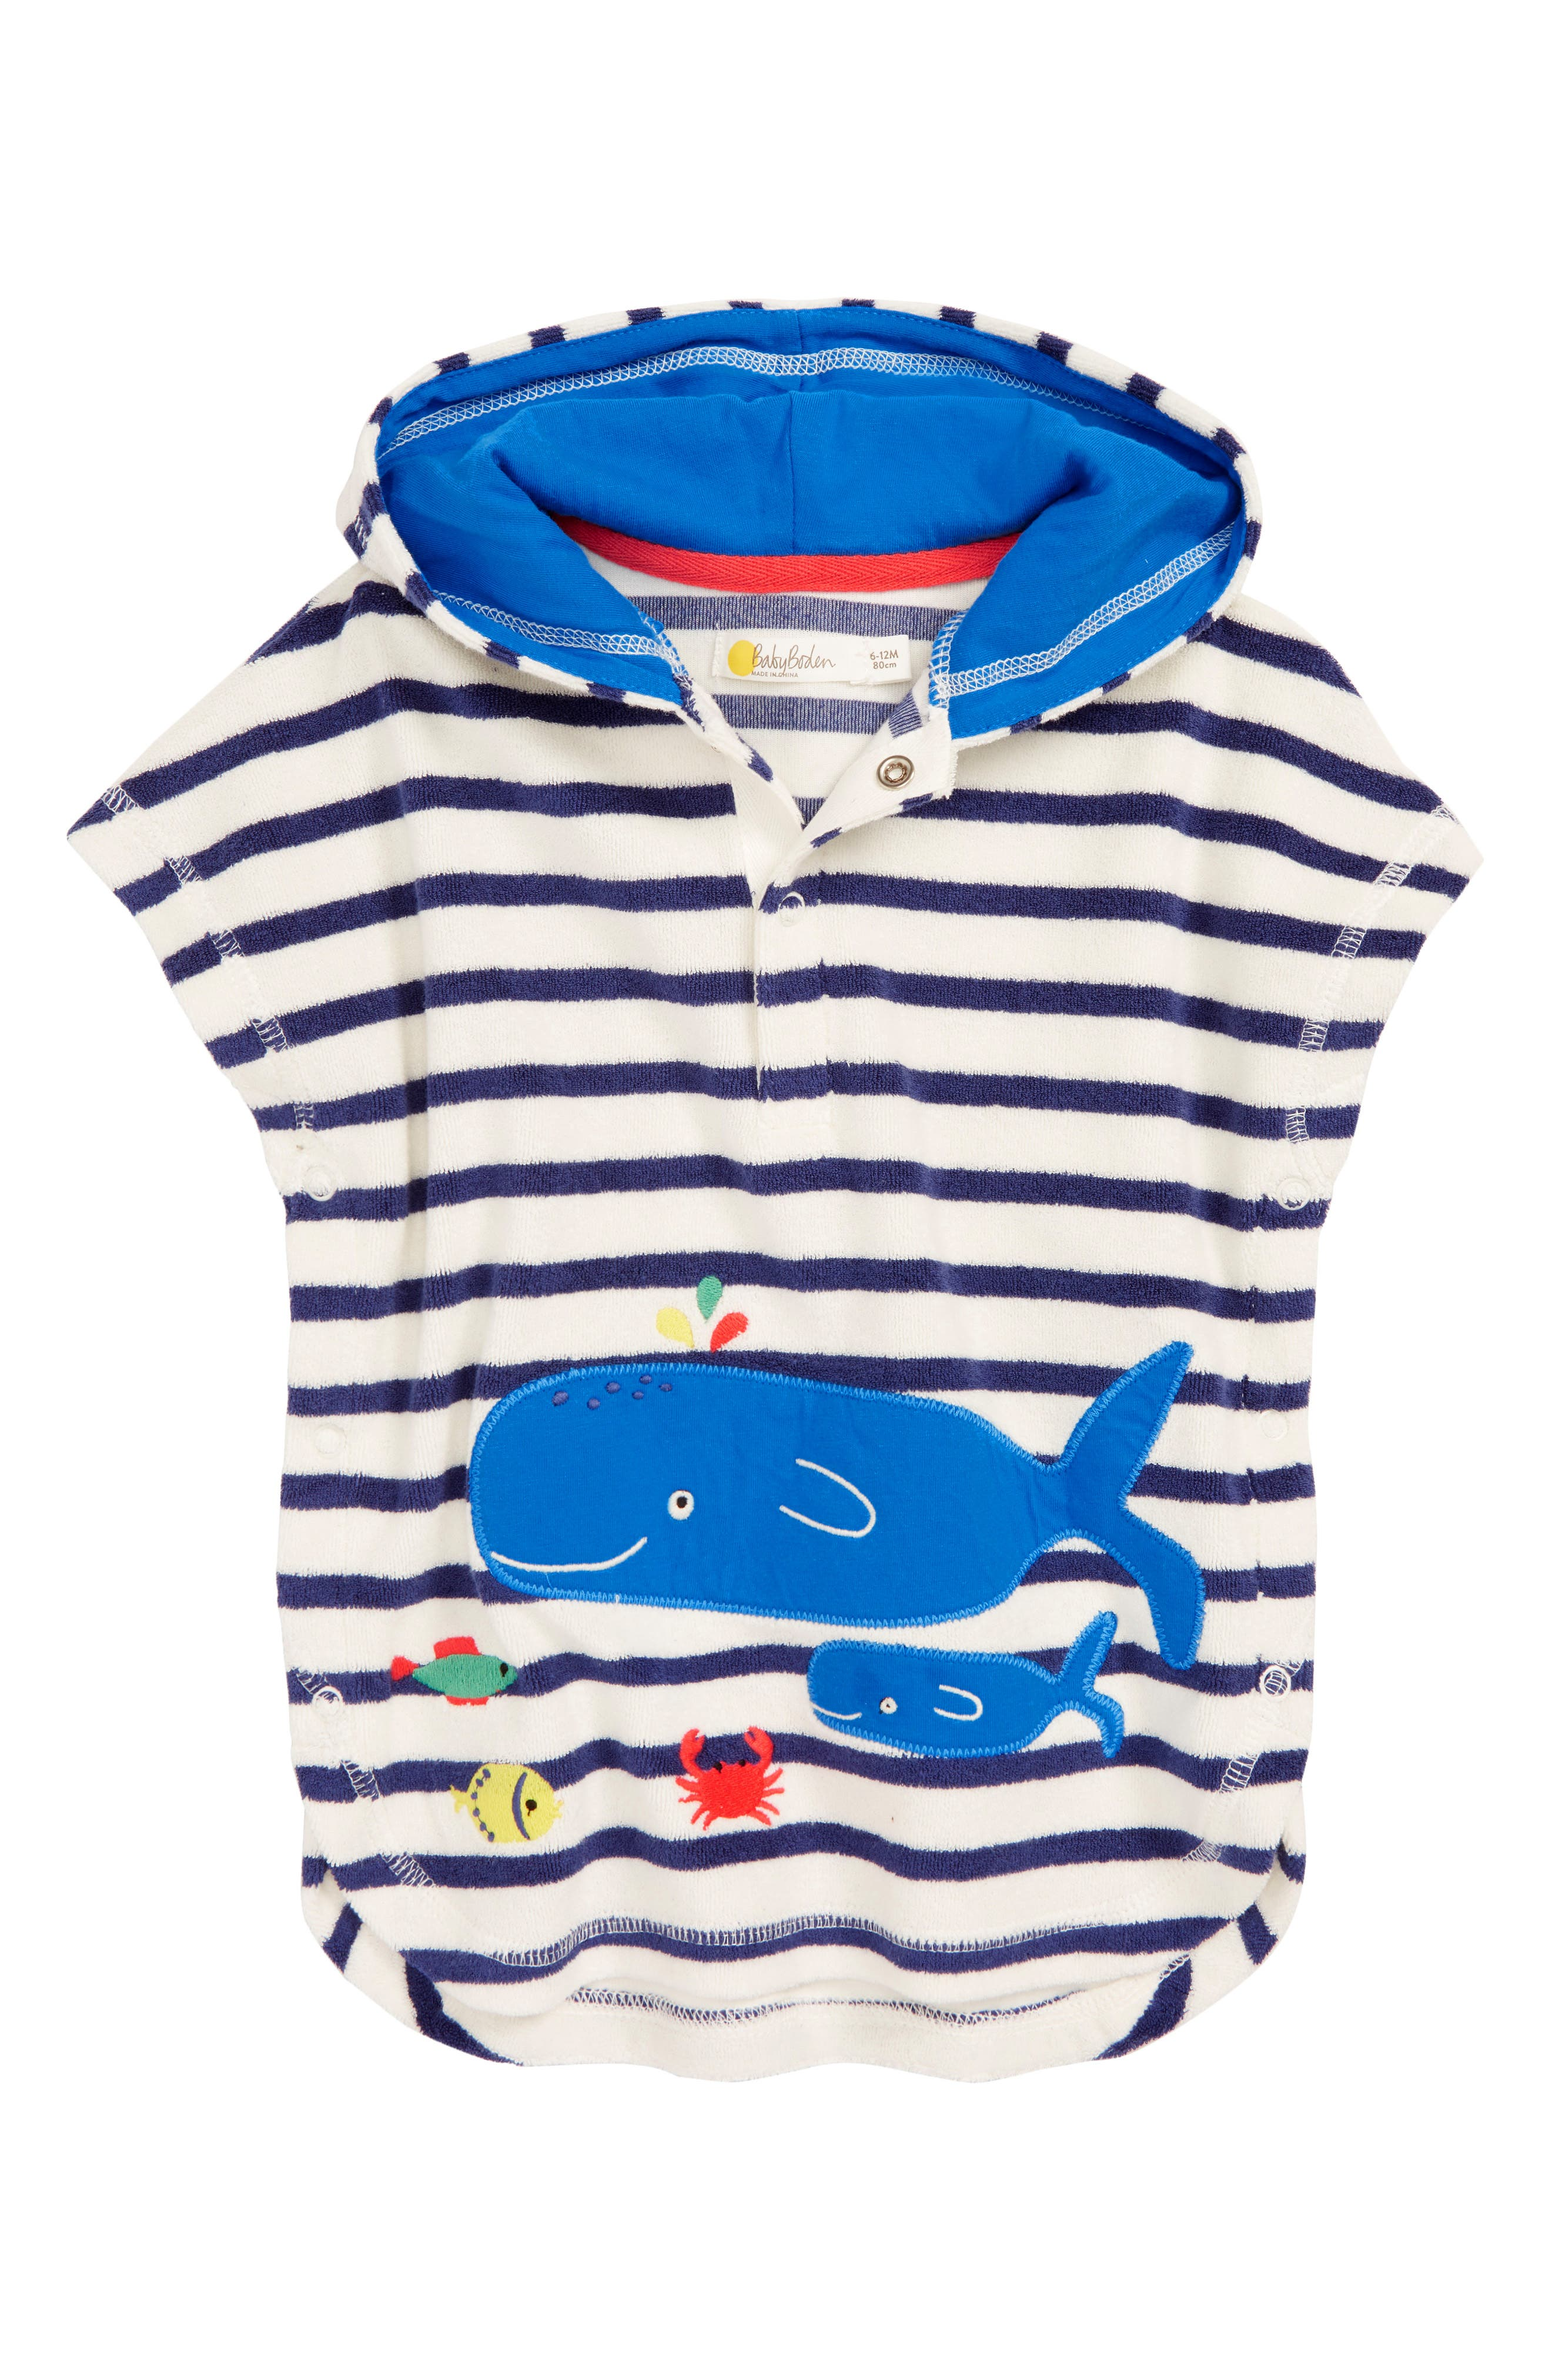 MINI BODEN,                             Whale Appliqué Hooded Cover-Up,                             Main thumbnail 1, color,                             NAV STARBOARD BLUE/ ECRU WHALE